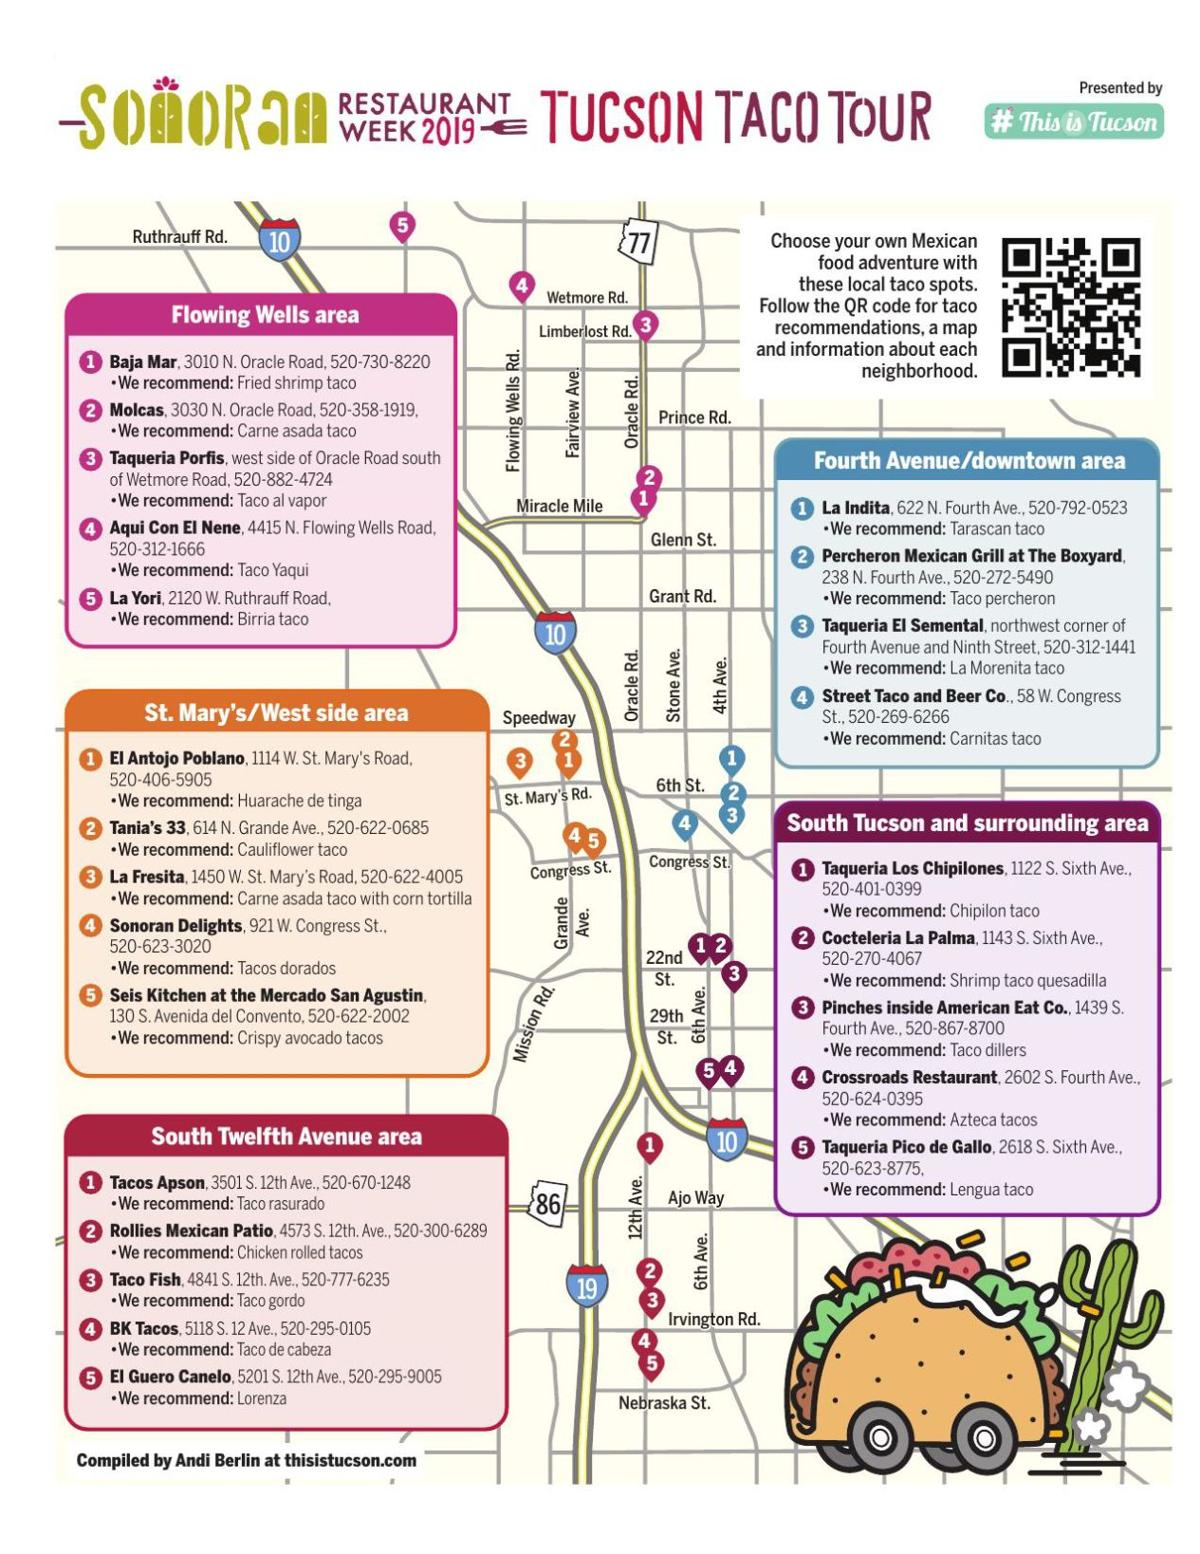 Download the Taco Tour map